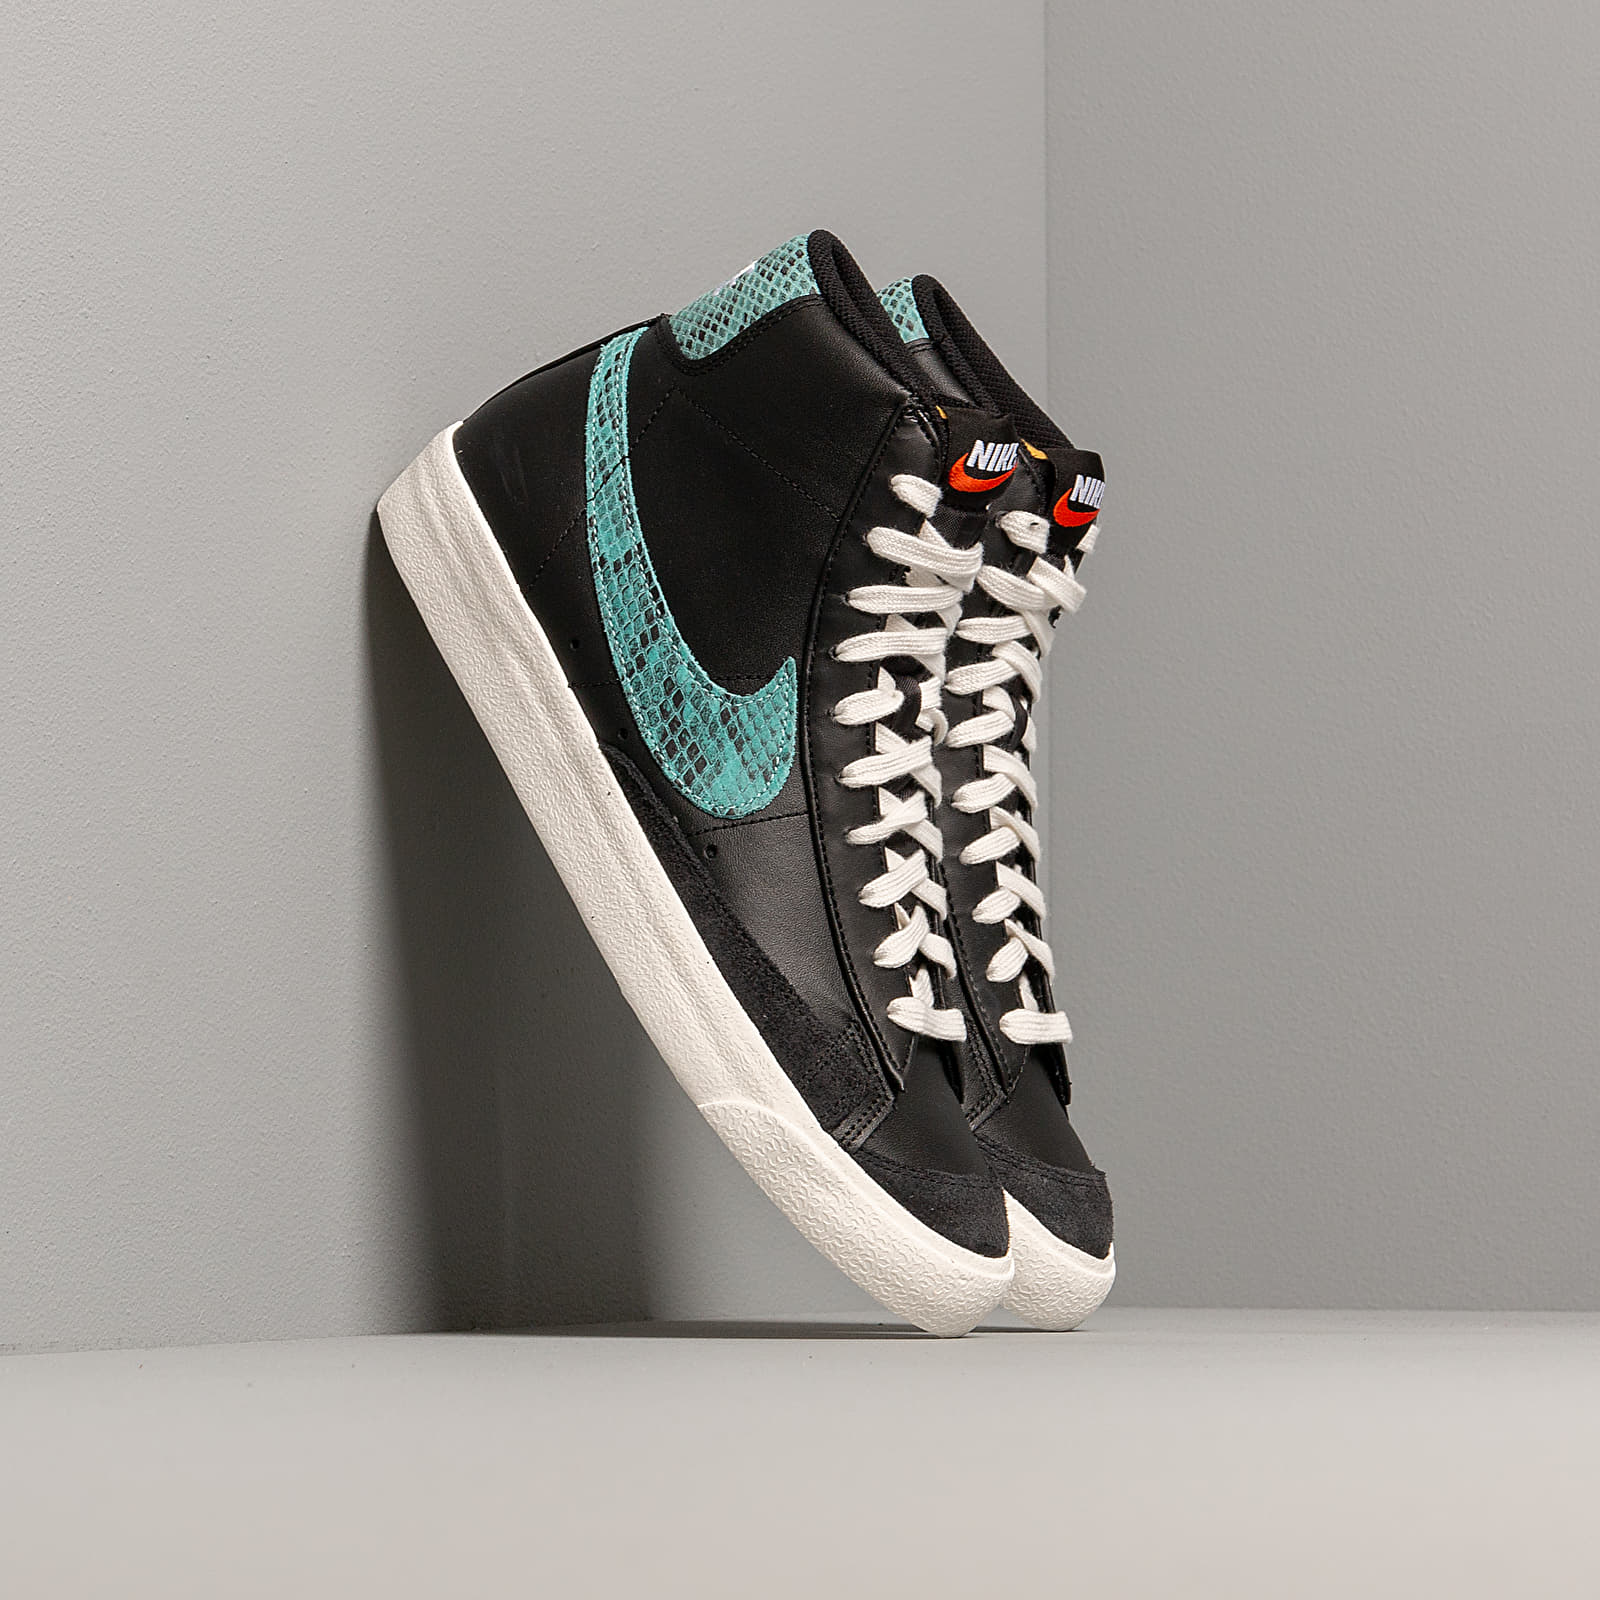 Men's shoes Nike Blazer Mid '77 Vintage We Reptile Black/ Light Aqua-Sail